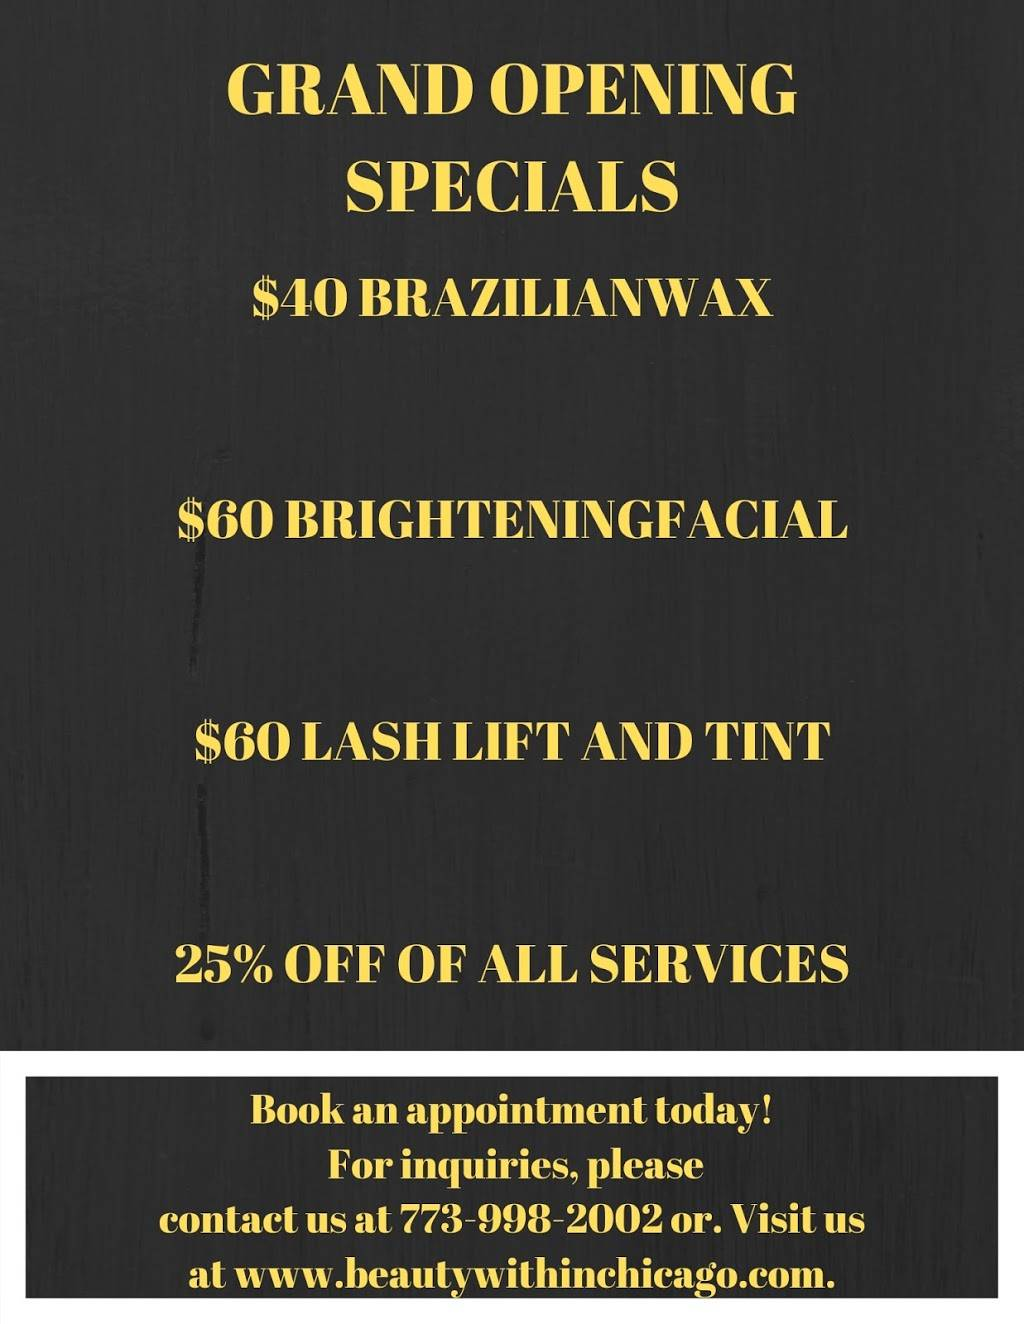 Beauty within Chicago Llc - spa    Photo 7 of 9   Address: 1743 W 18th St, Chicago, IL 60608, USA   Phone: (773) 998-2002